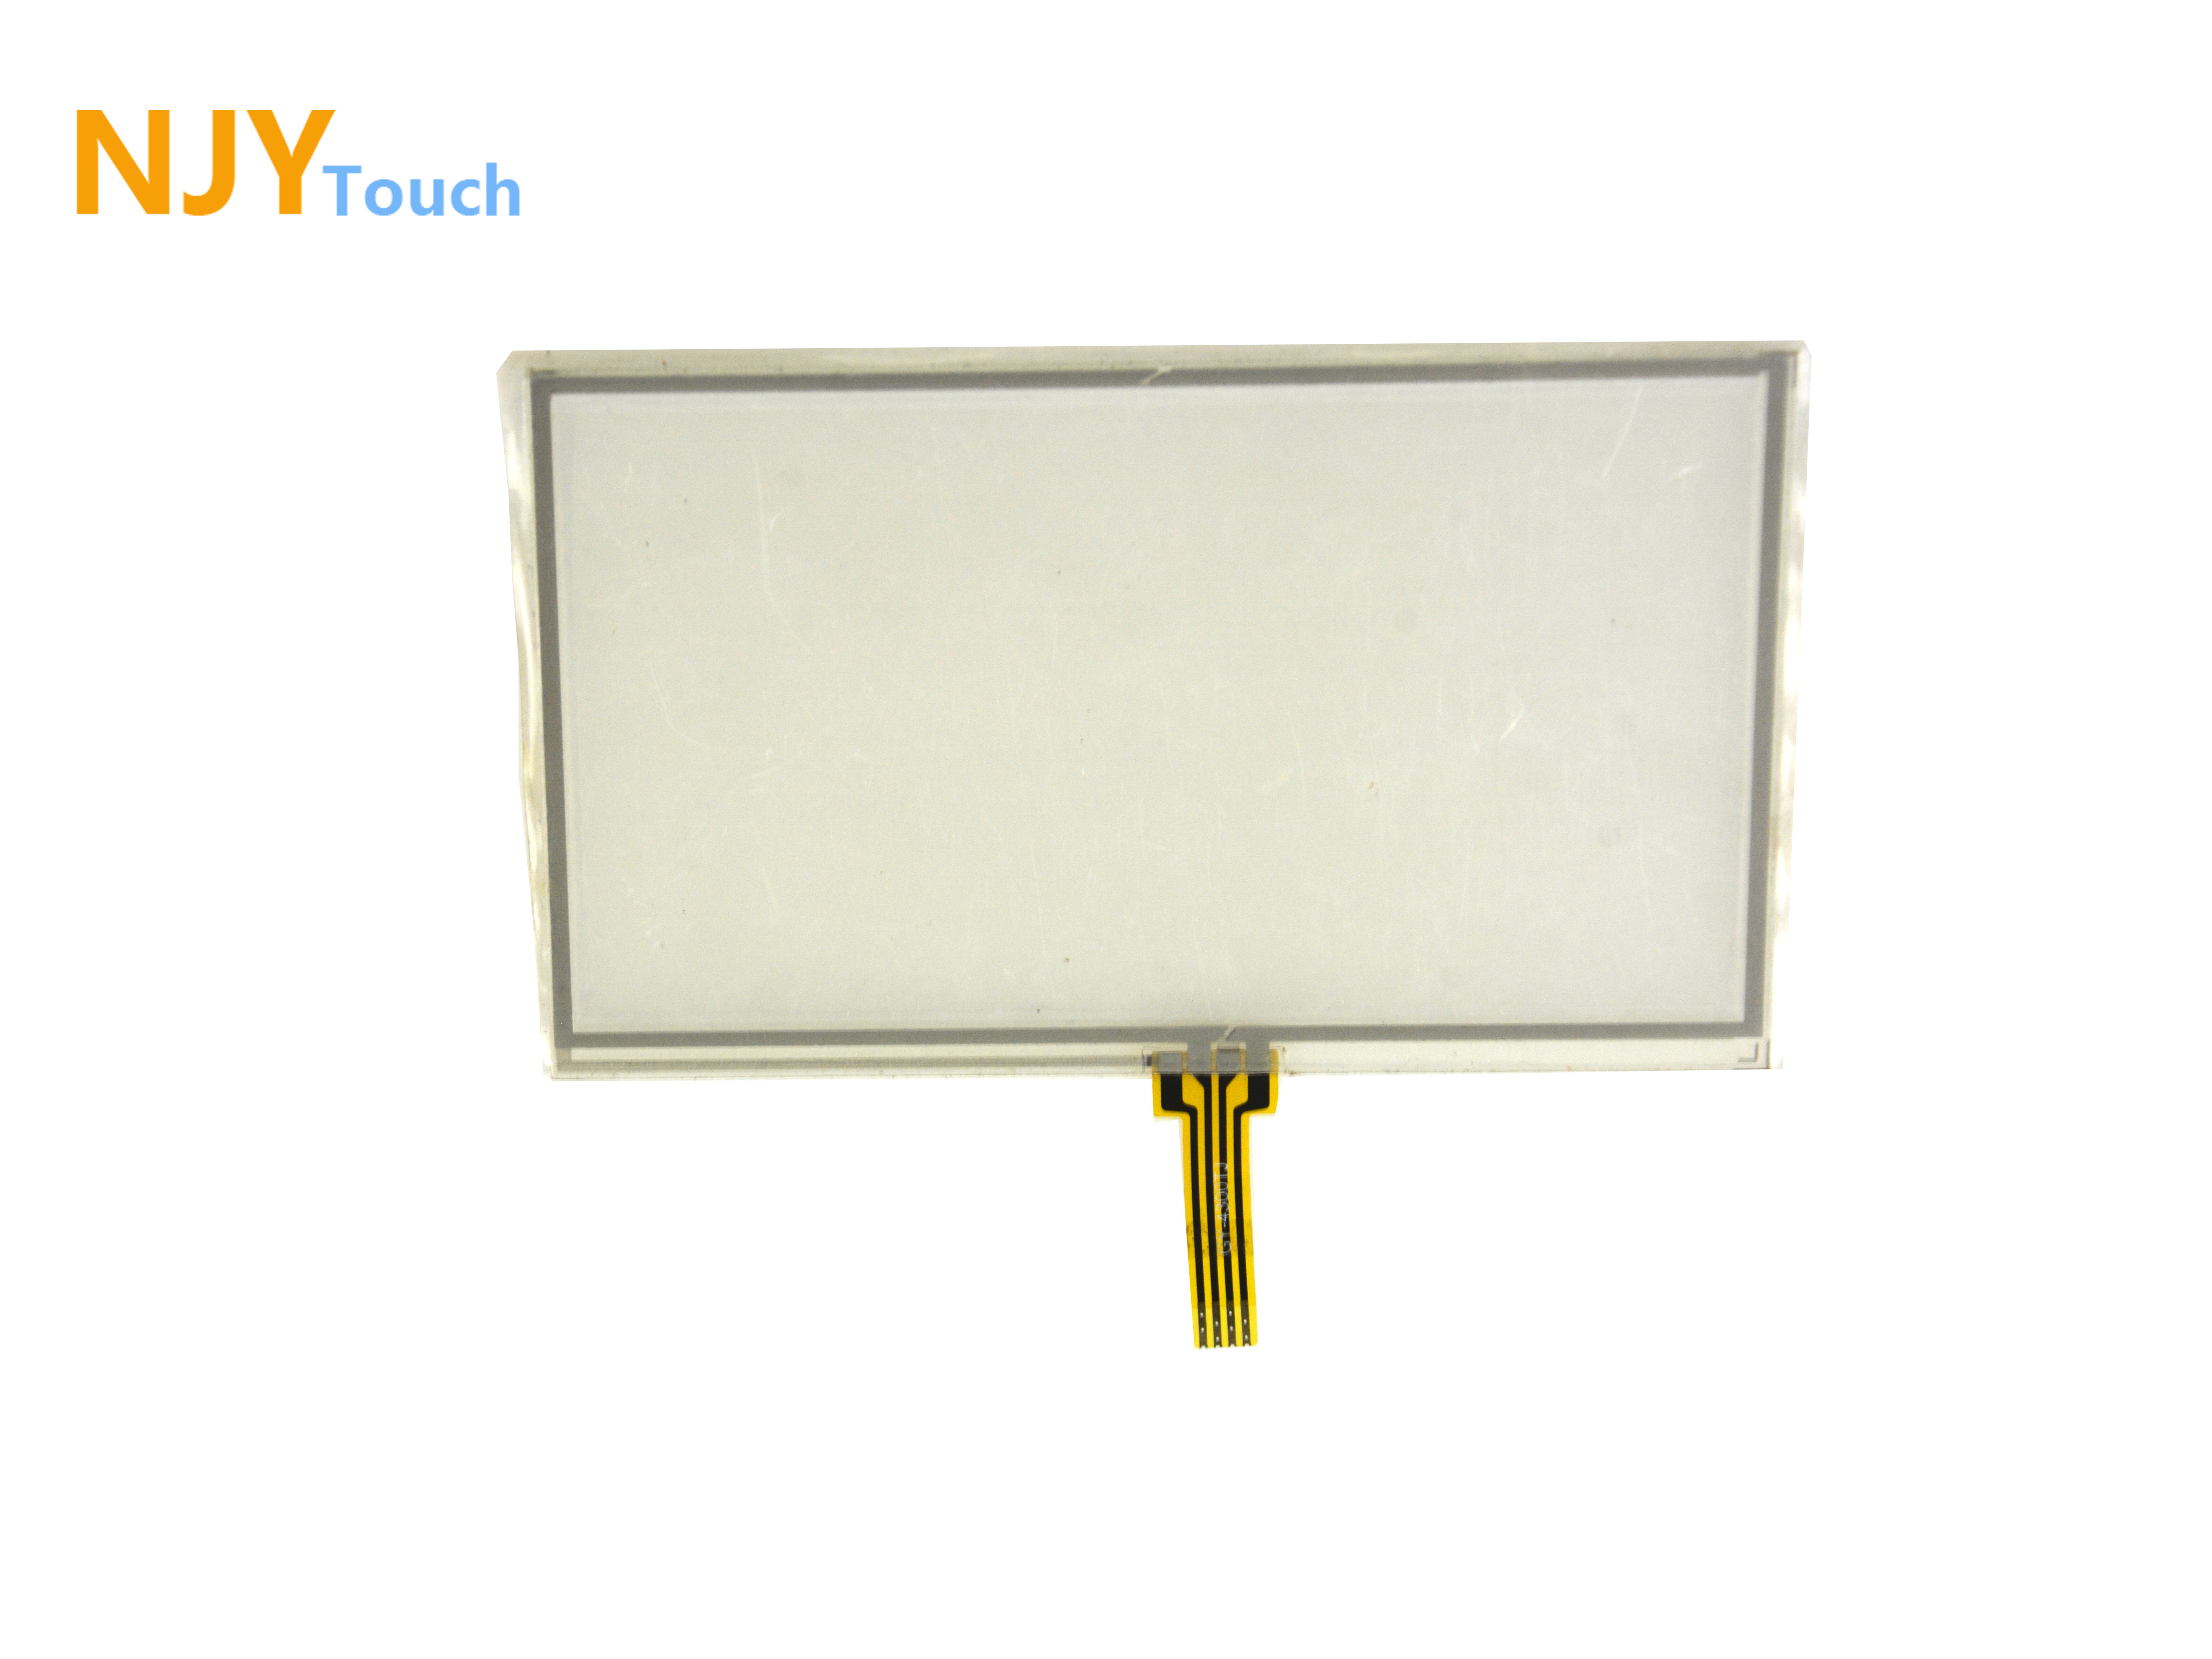 4.3 Inch 4 Wire Resistive Touch Panel 104 x 65mm For AT043TN24 HSD043I9W1 LCD Screen